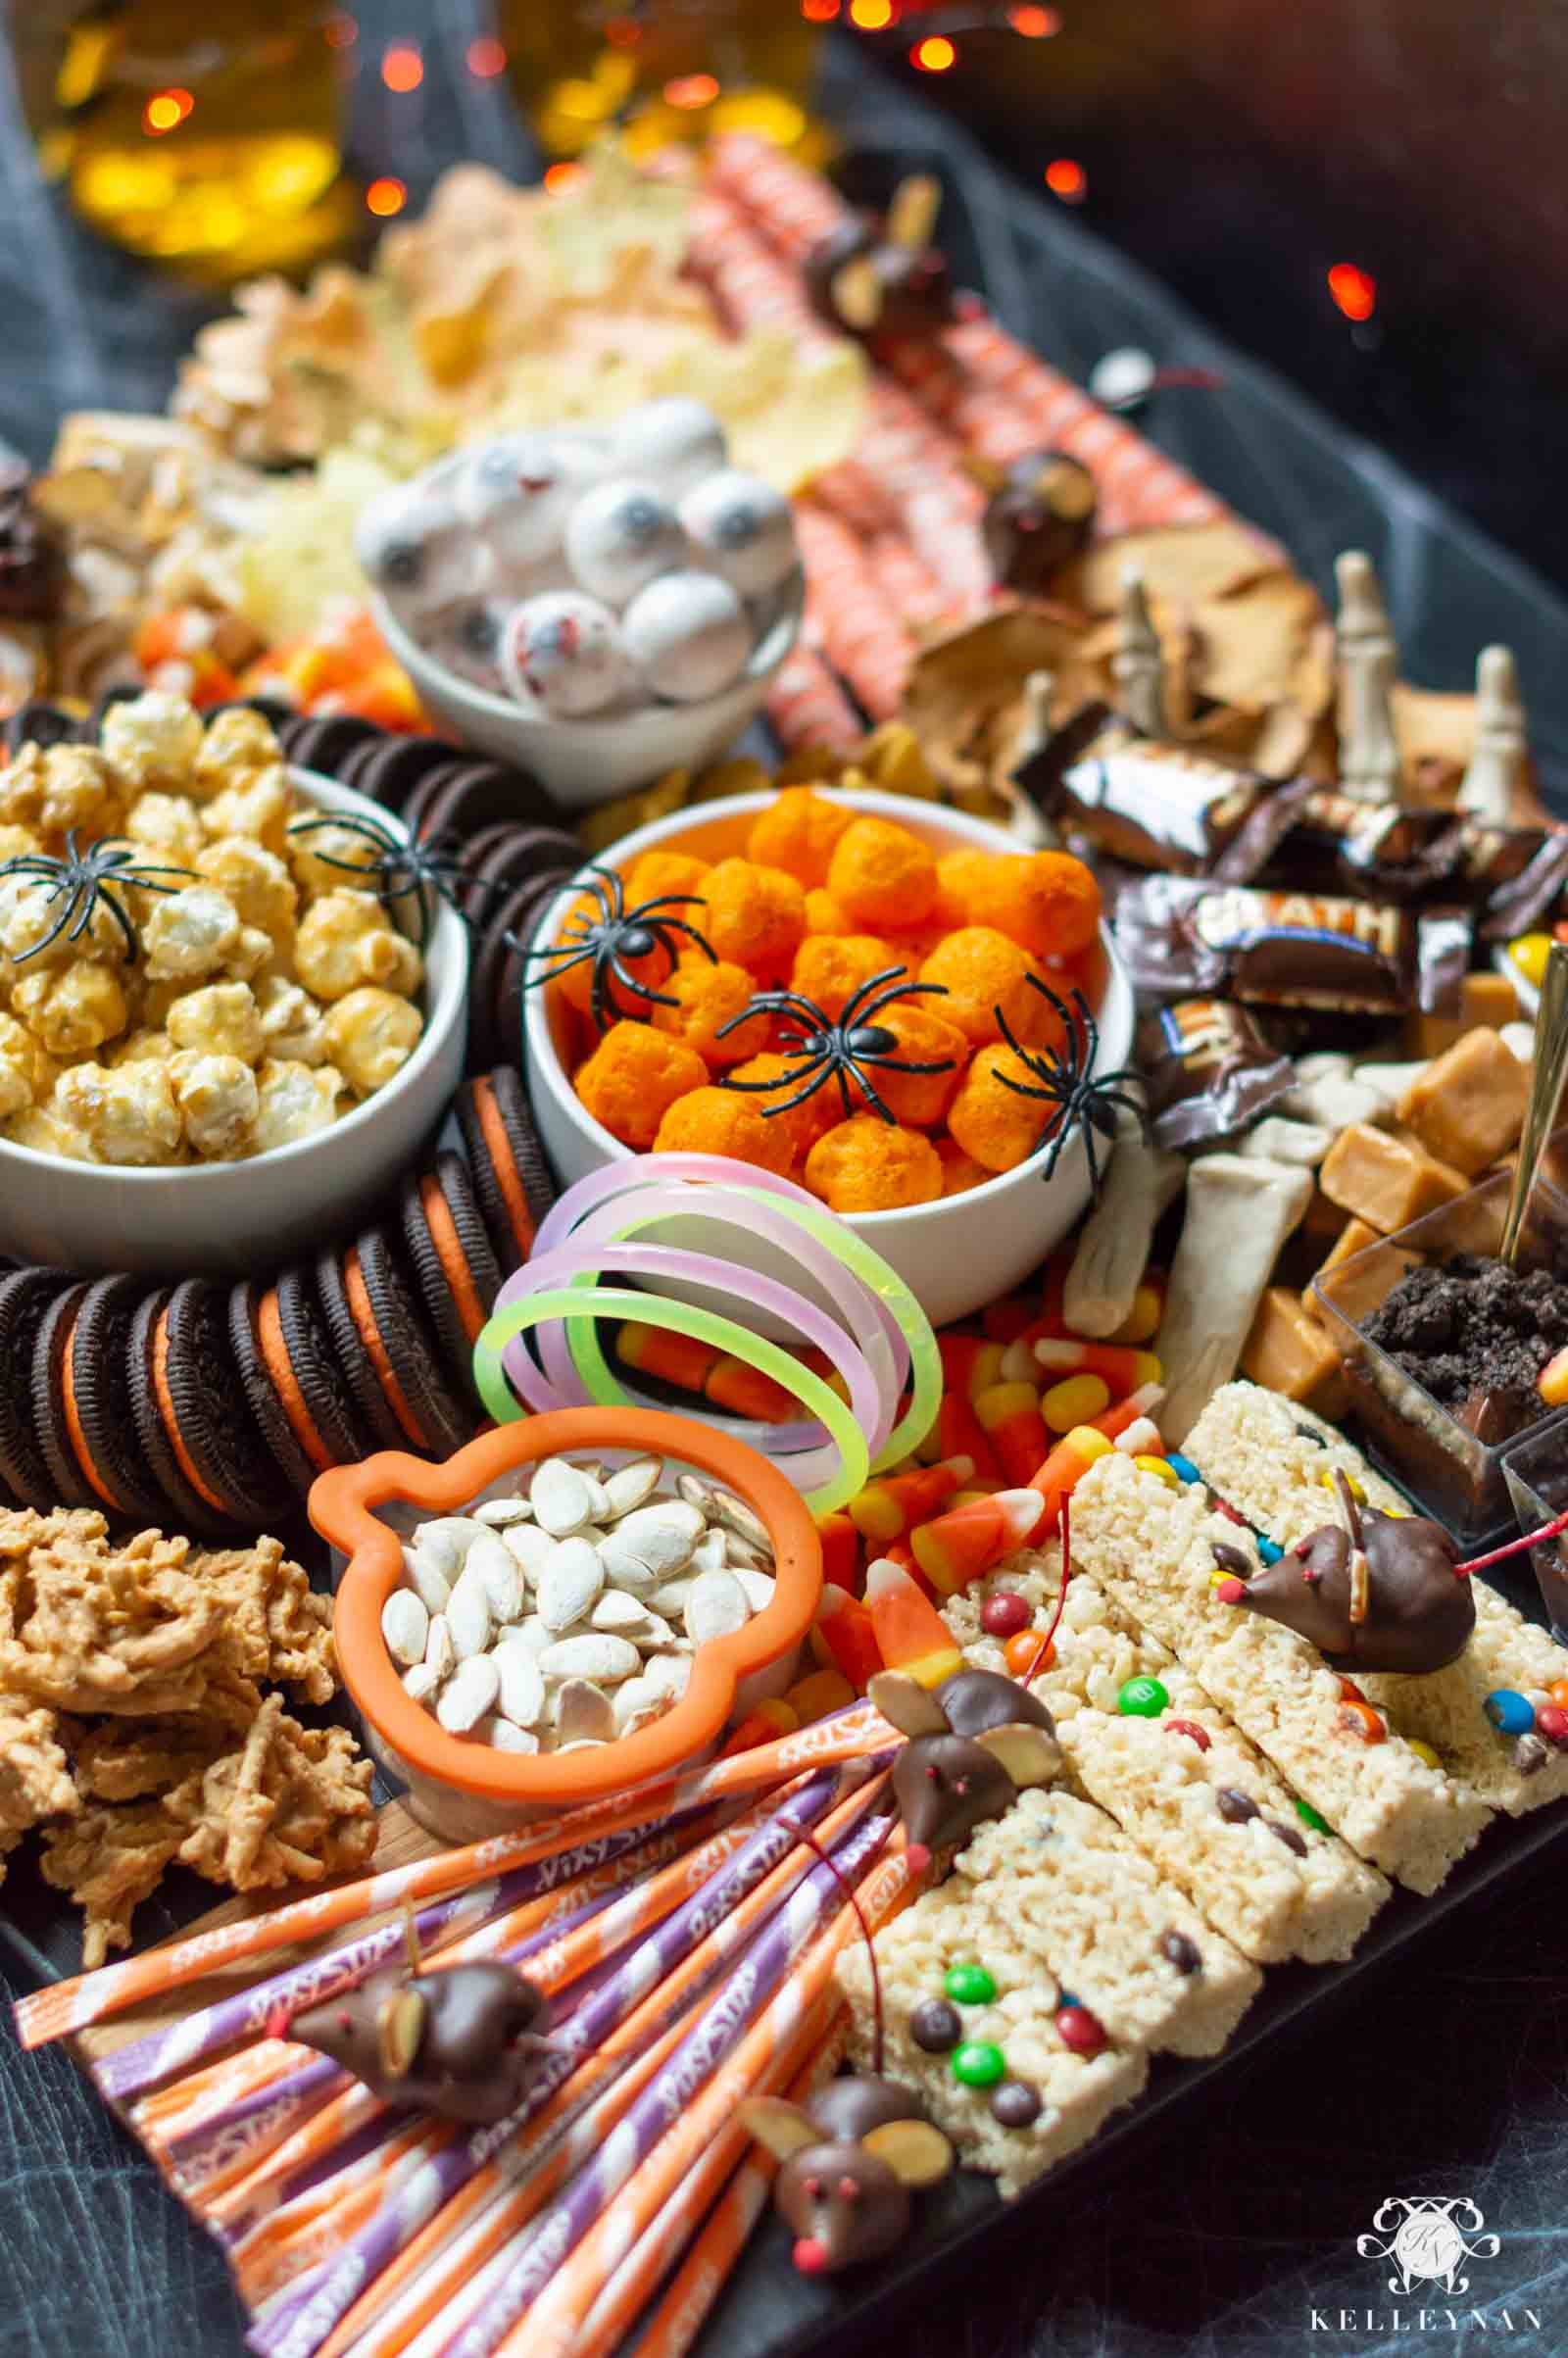 Everything You Need for the Ultimate Halloween Charcuterie Board